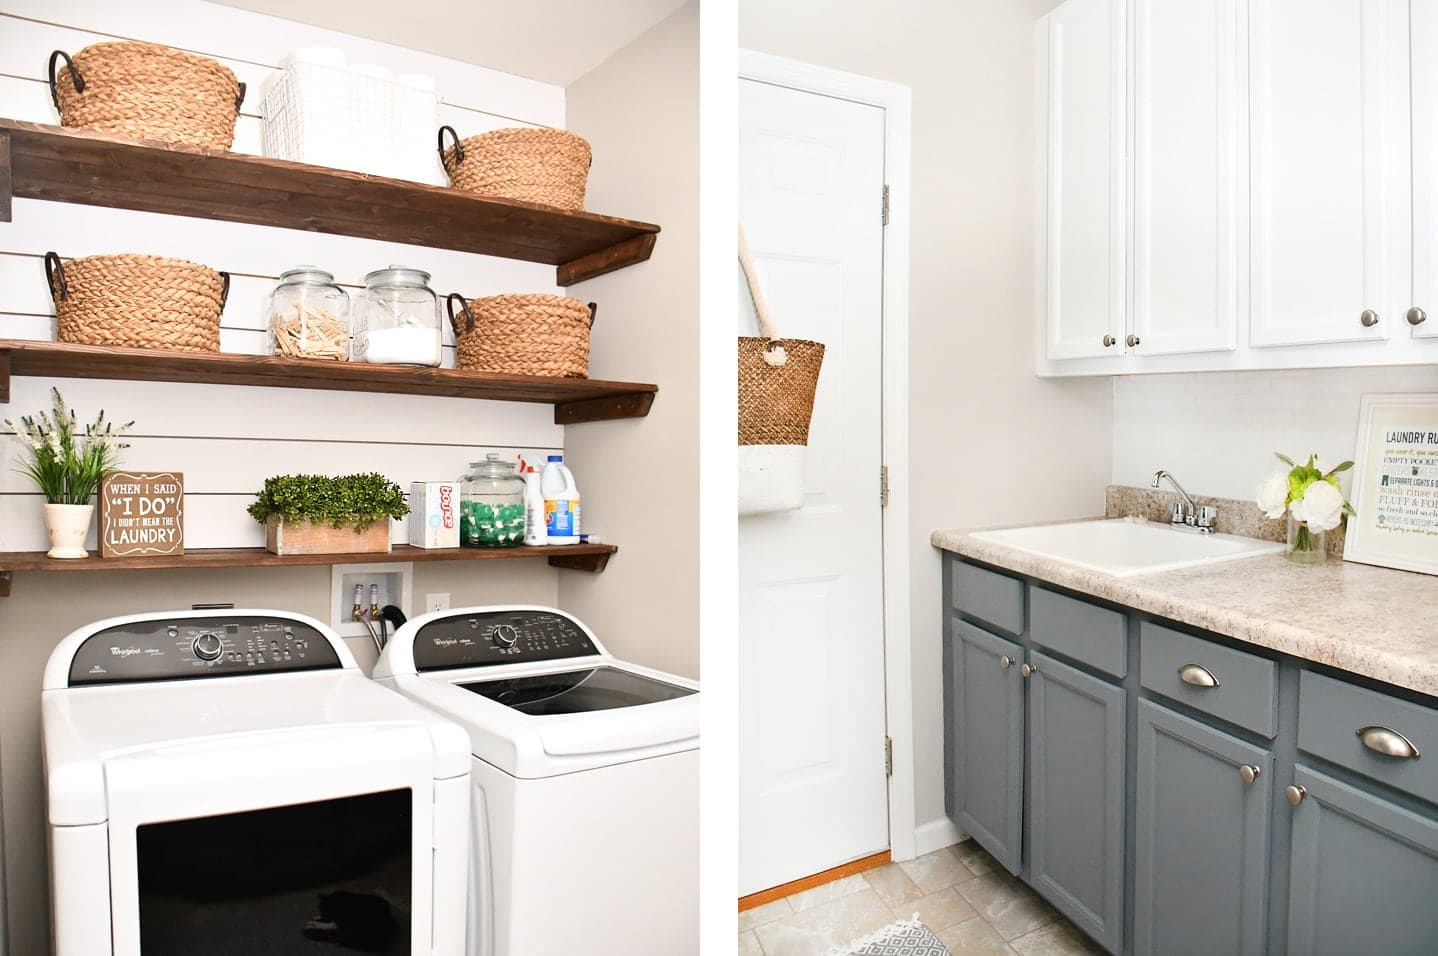 Sherwin Williams Colonnade Gray laundry room